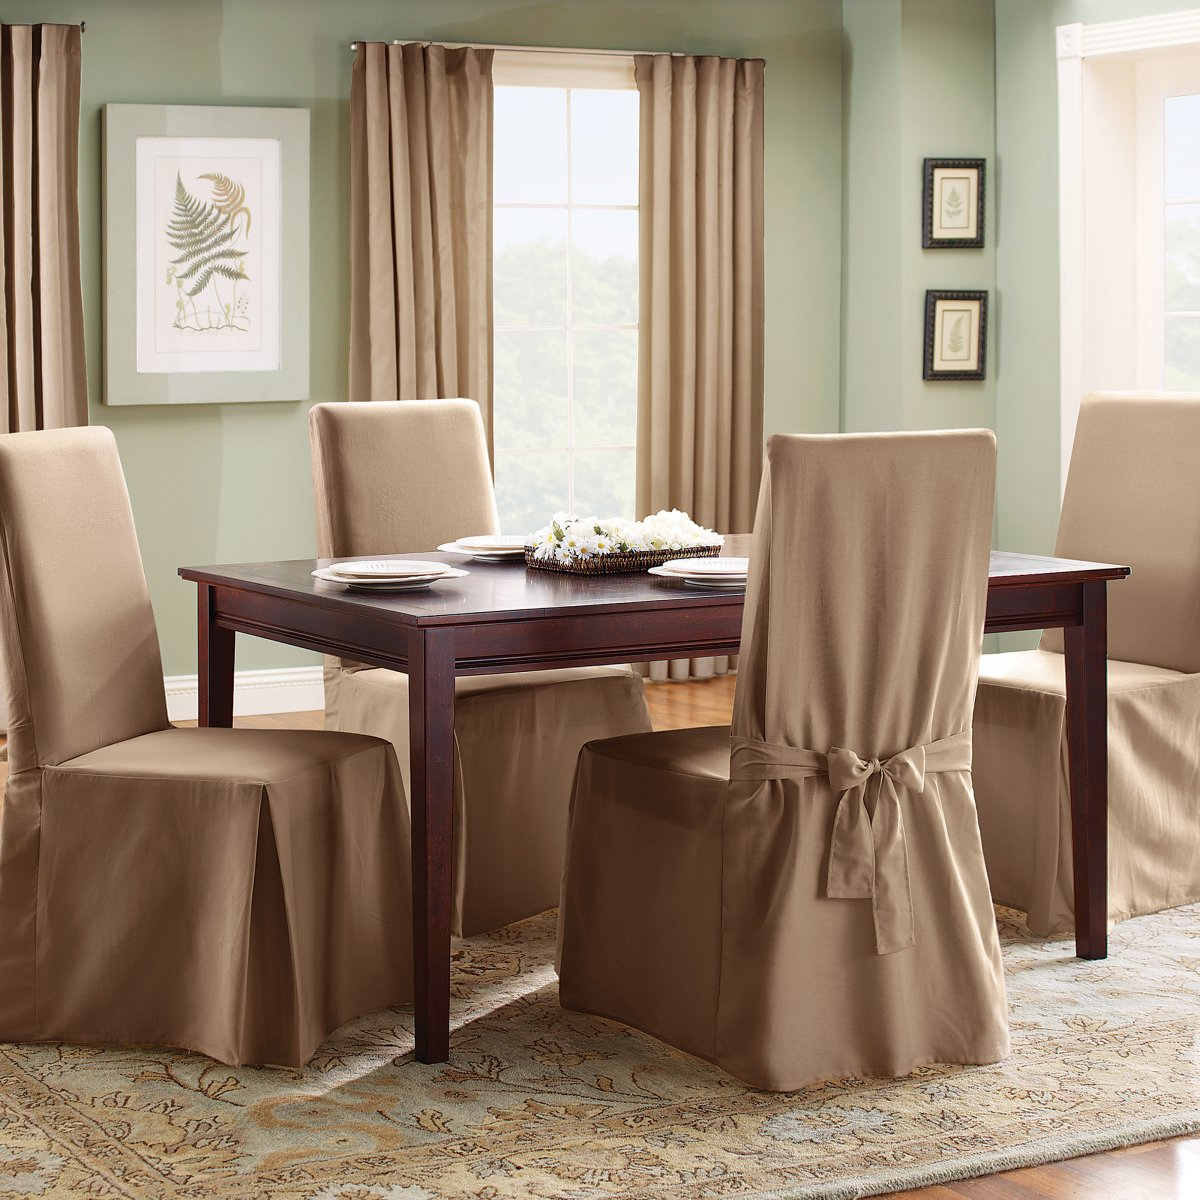 Dining Chair Slipcover Slipcovers For Dining Room Chairs That Embellish Your